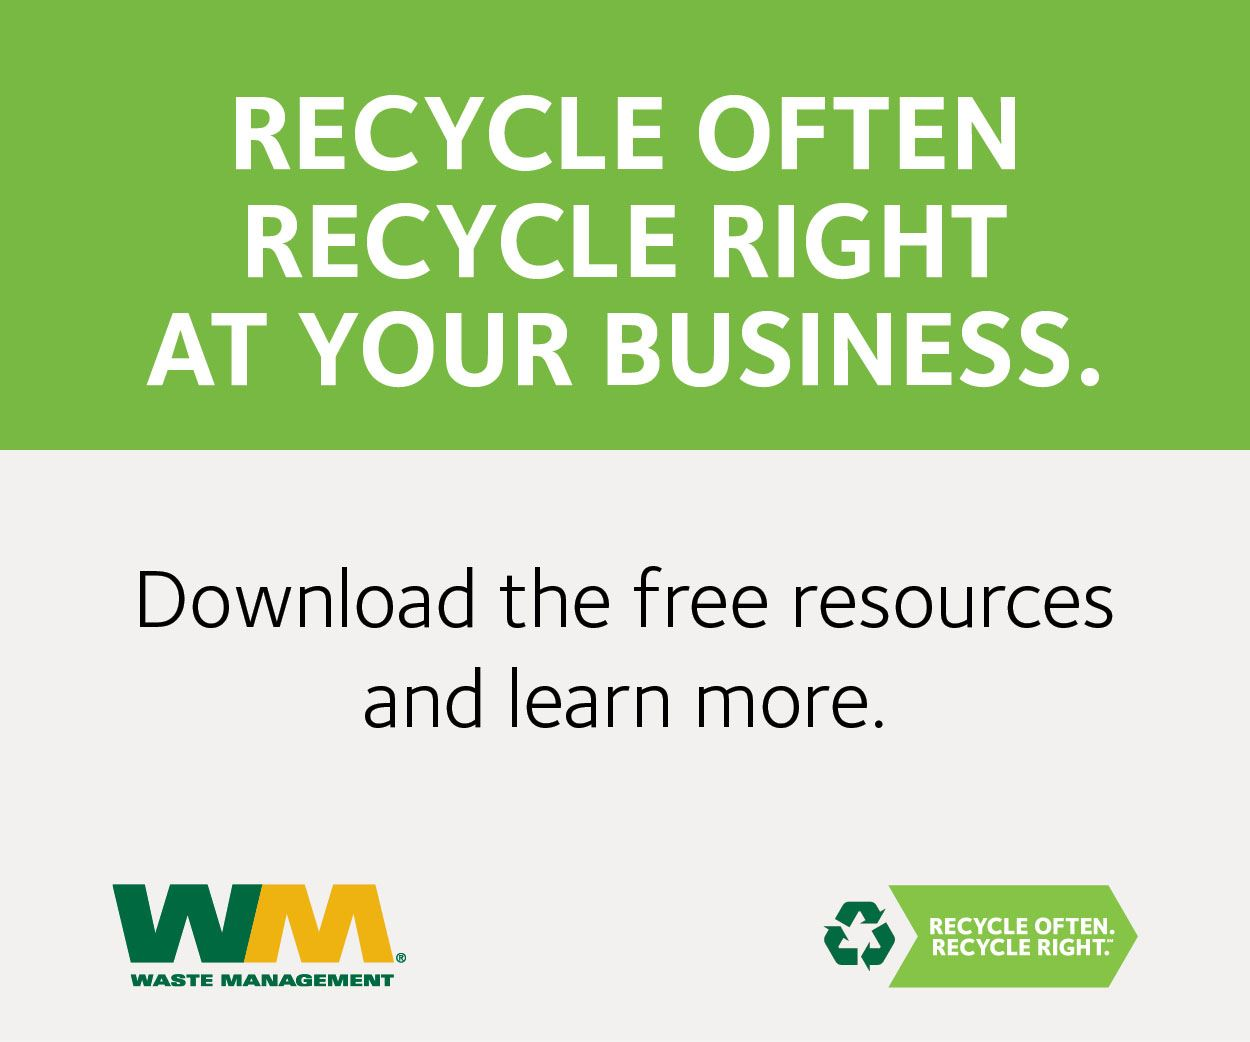 Recycle Often Recycle Right at Your Business